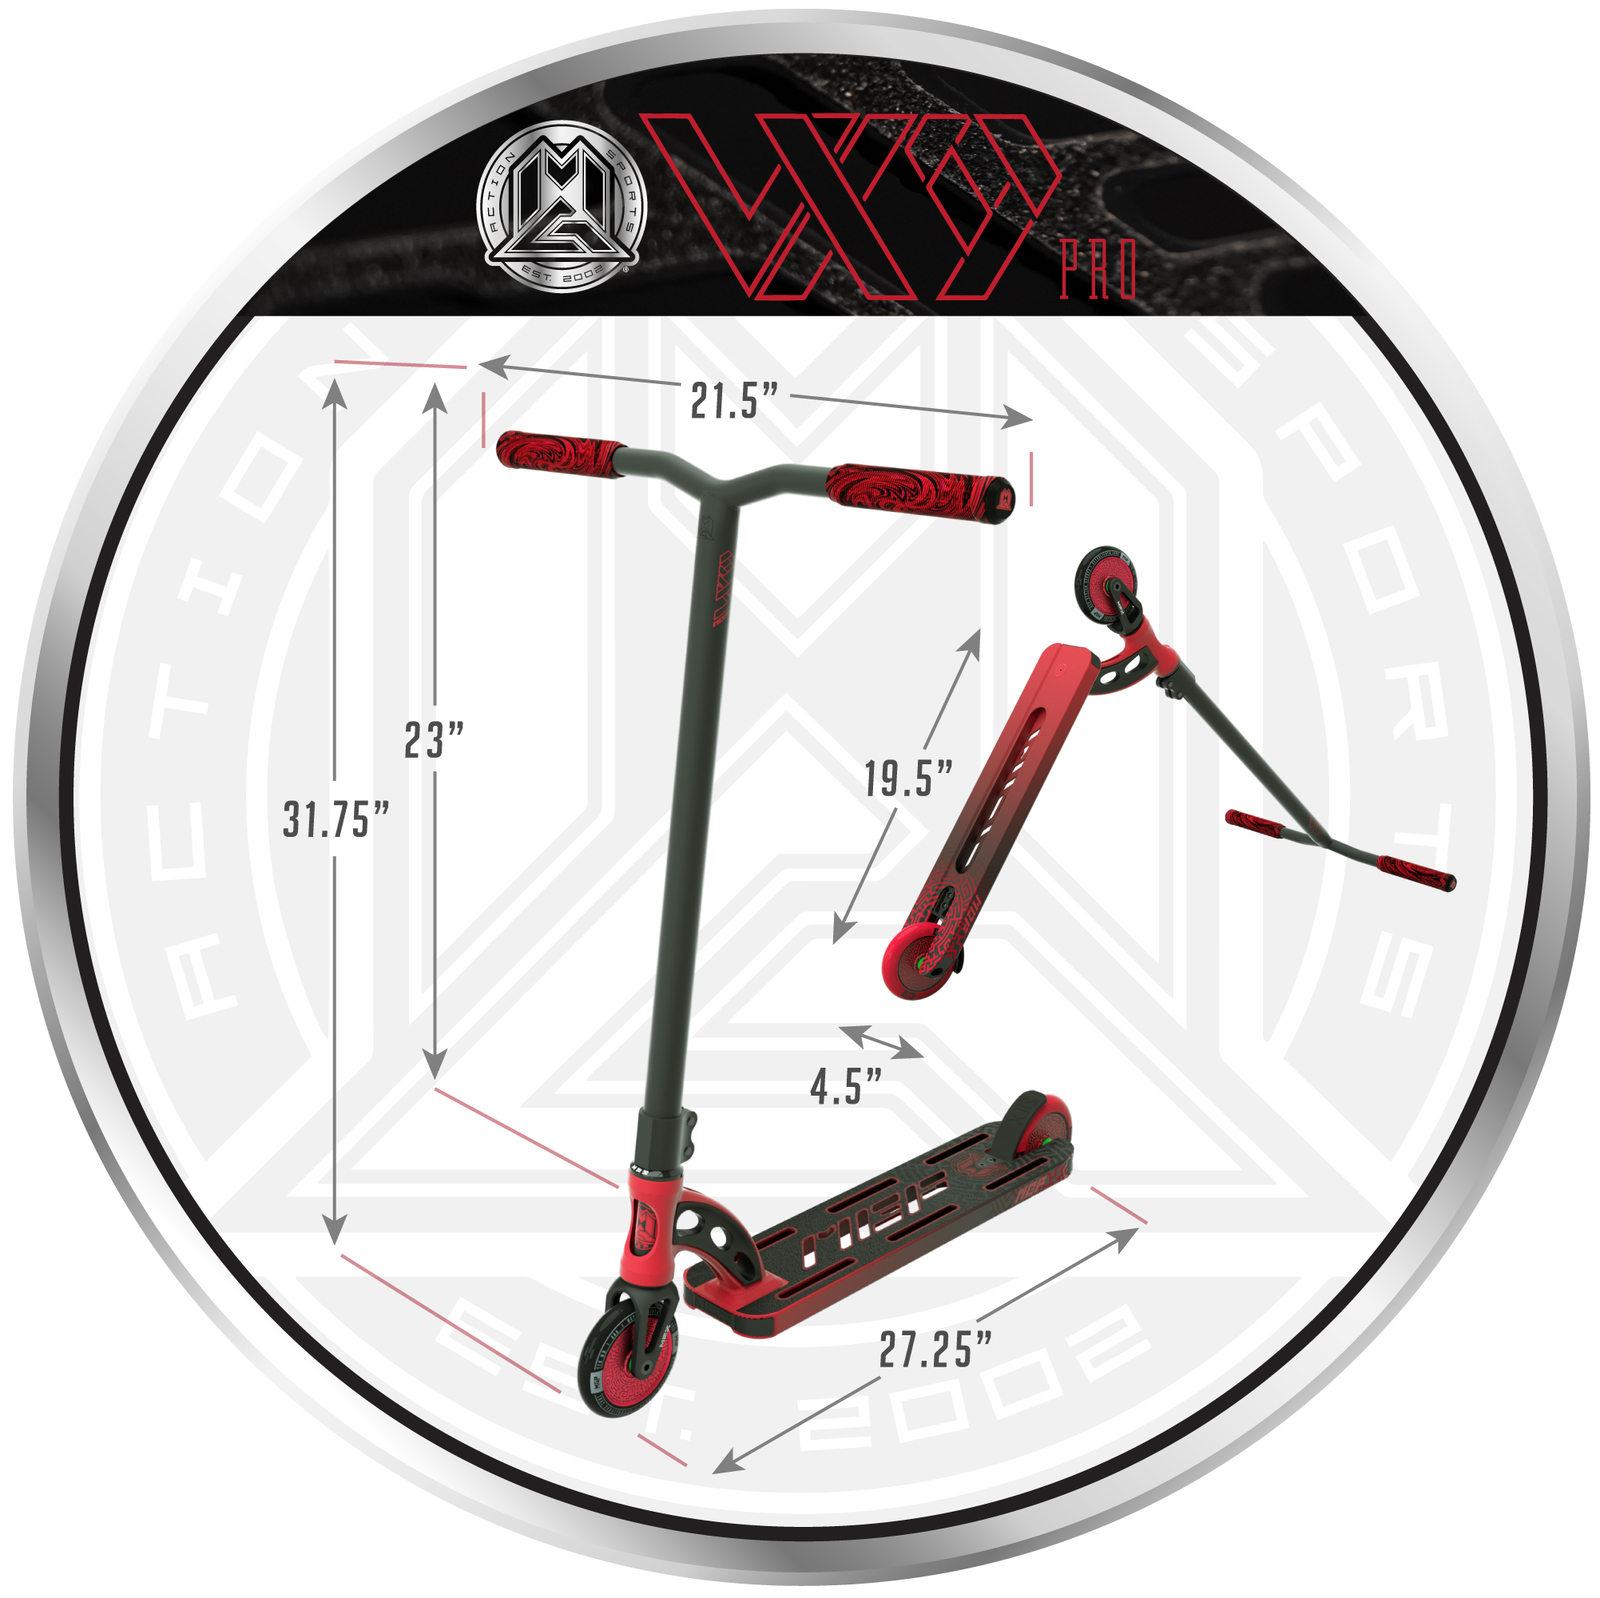 MADD Gear: VX9 Pro Scooter - Red/Black image